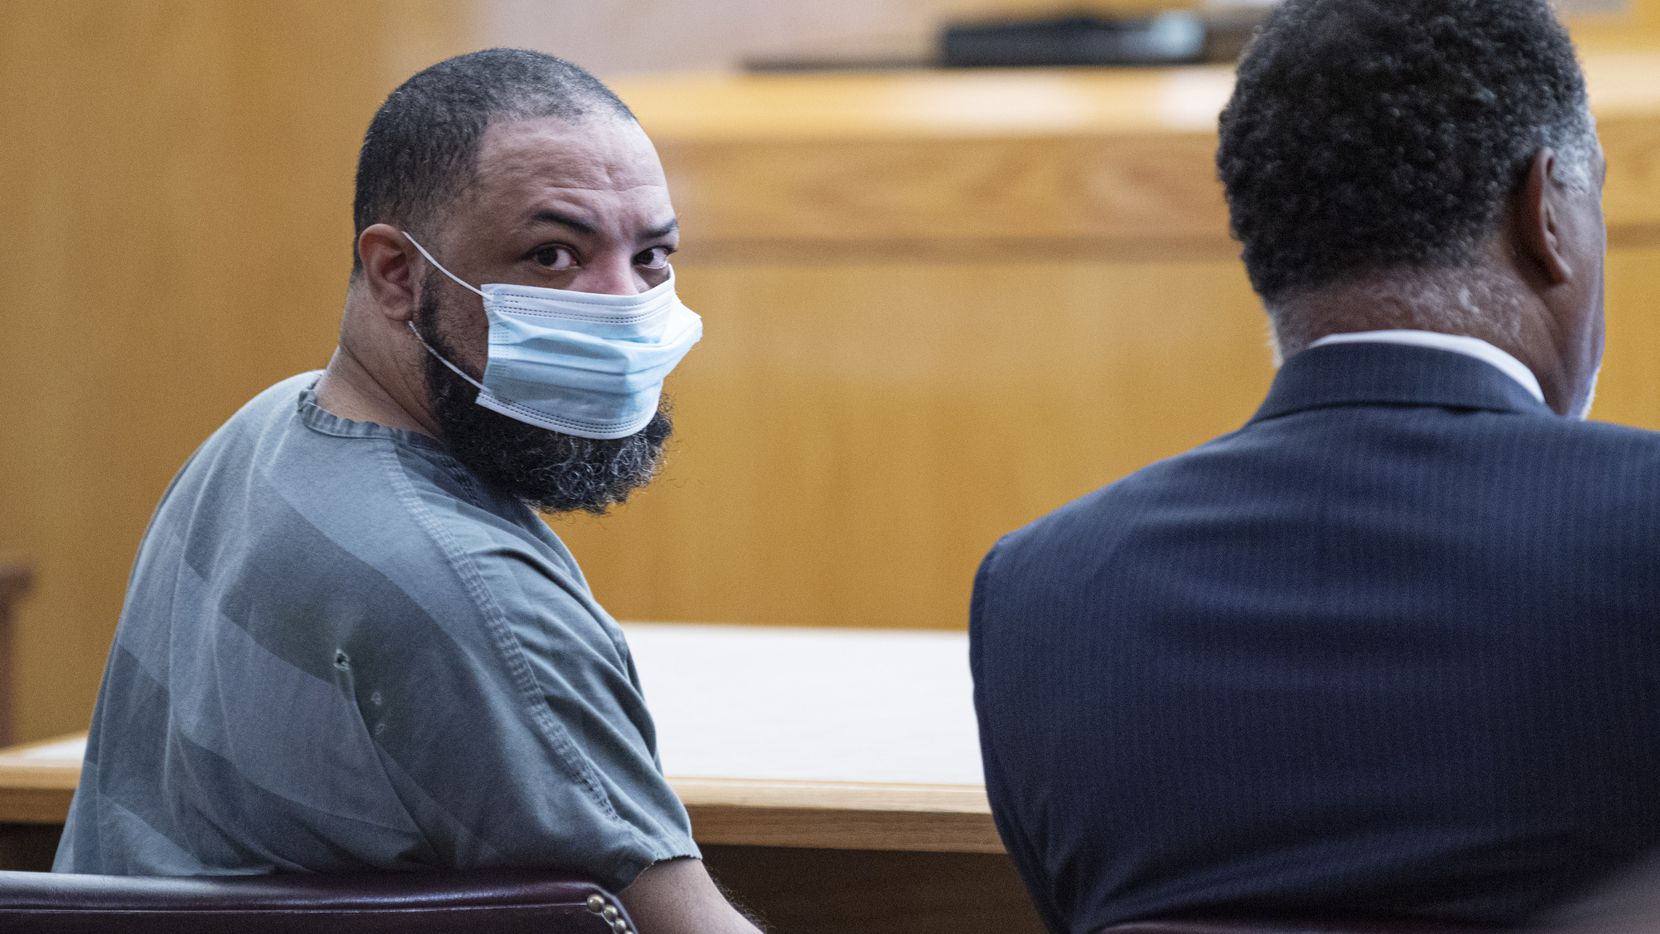 Prisoner Curtis Bullock looks over his shoulder as a witness walks into the 256th District Court to testify during Bullock's murder trial, on Thursday, July 15, 2021 at the Frank Crowley Criminal Courts Building in Dallas.